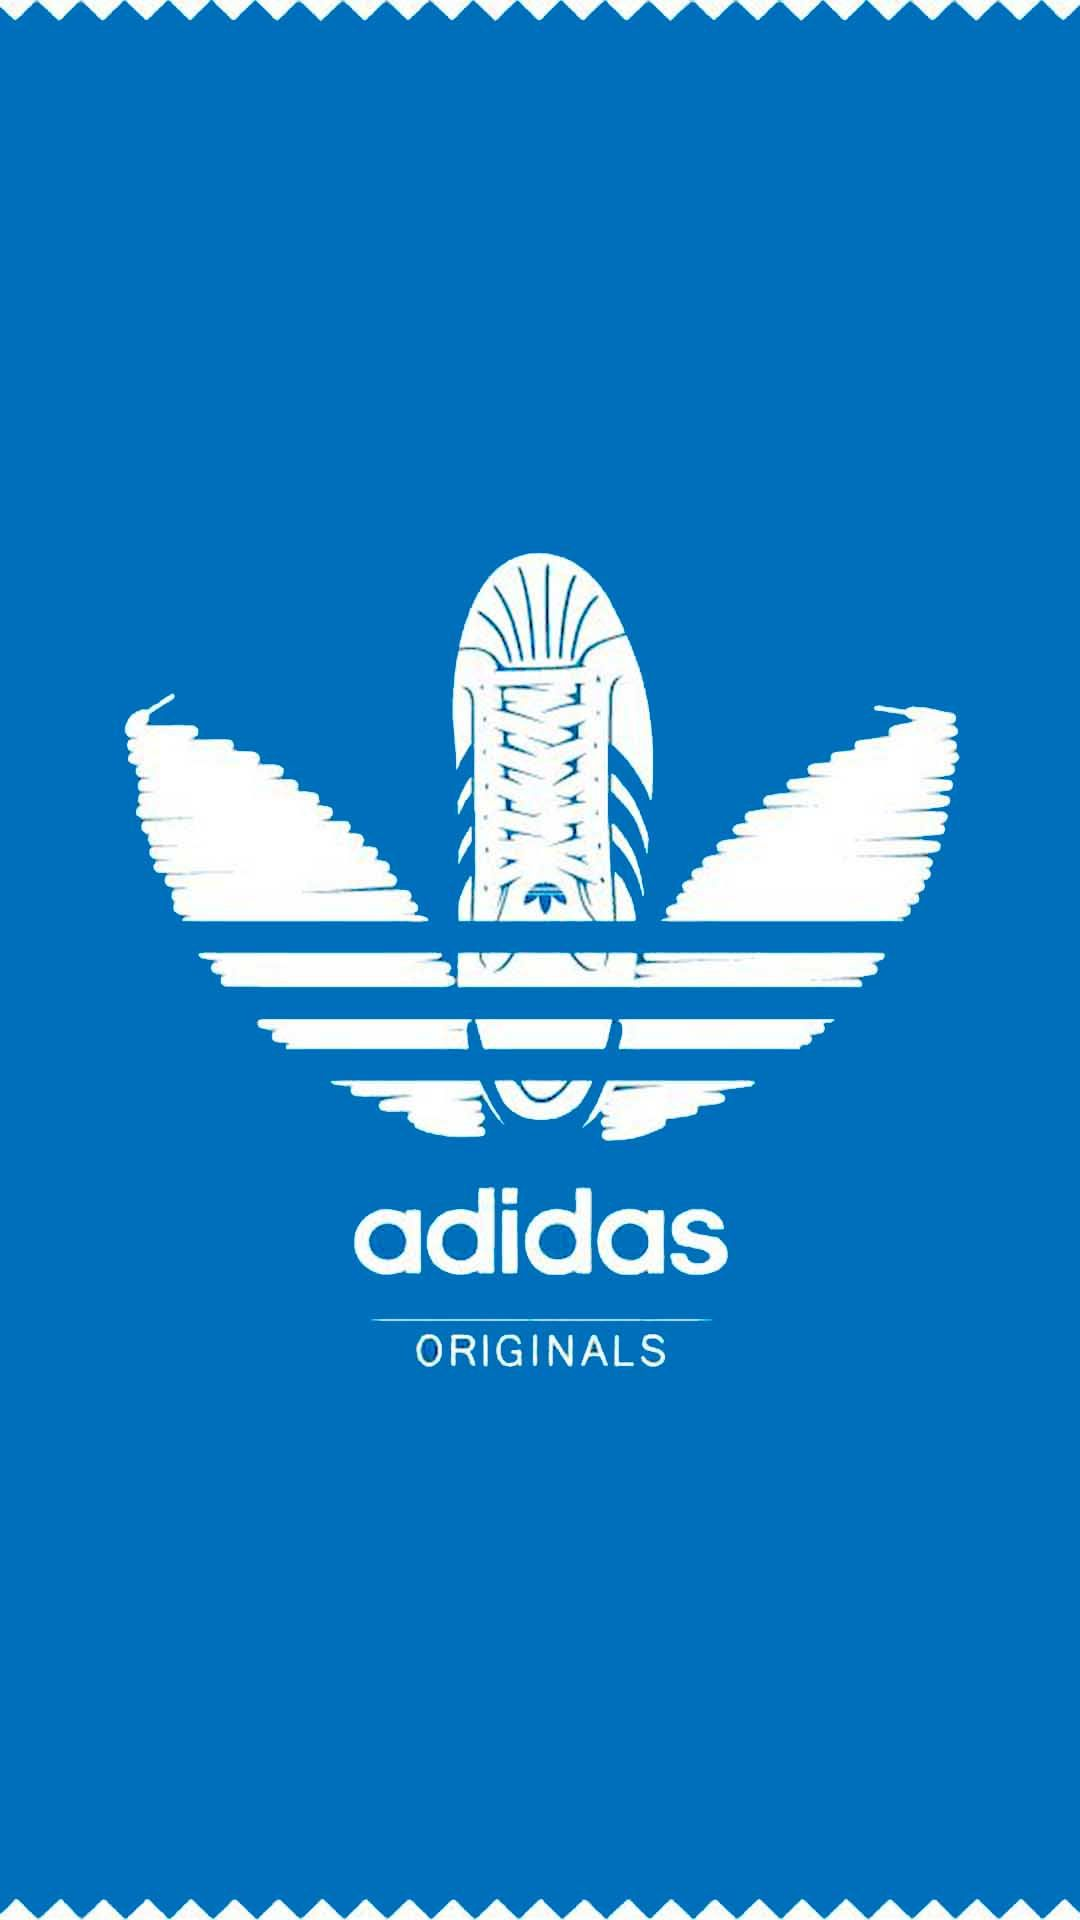 Adidas Girly Wallpaper In Adidas Wallpapers Adidas Logo Wallpapers Adidas Art